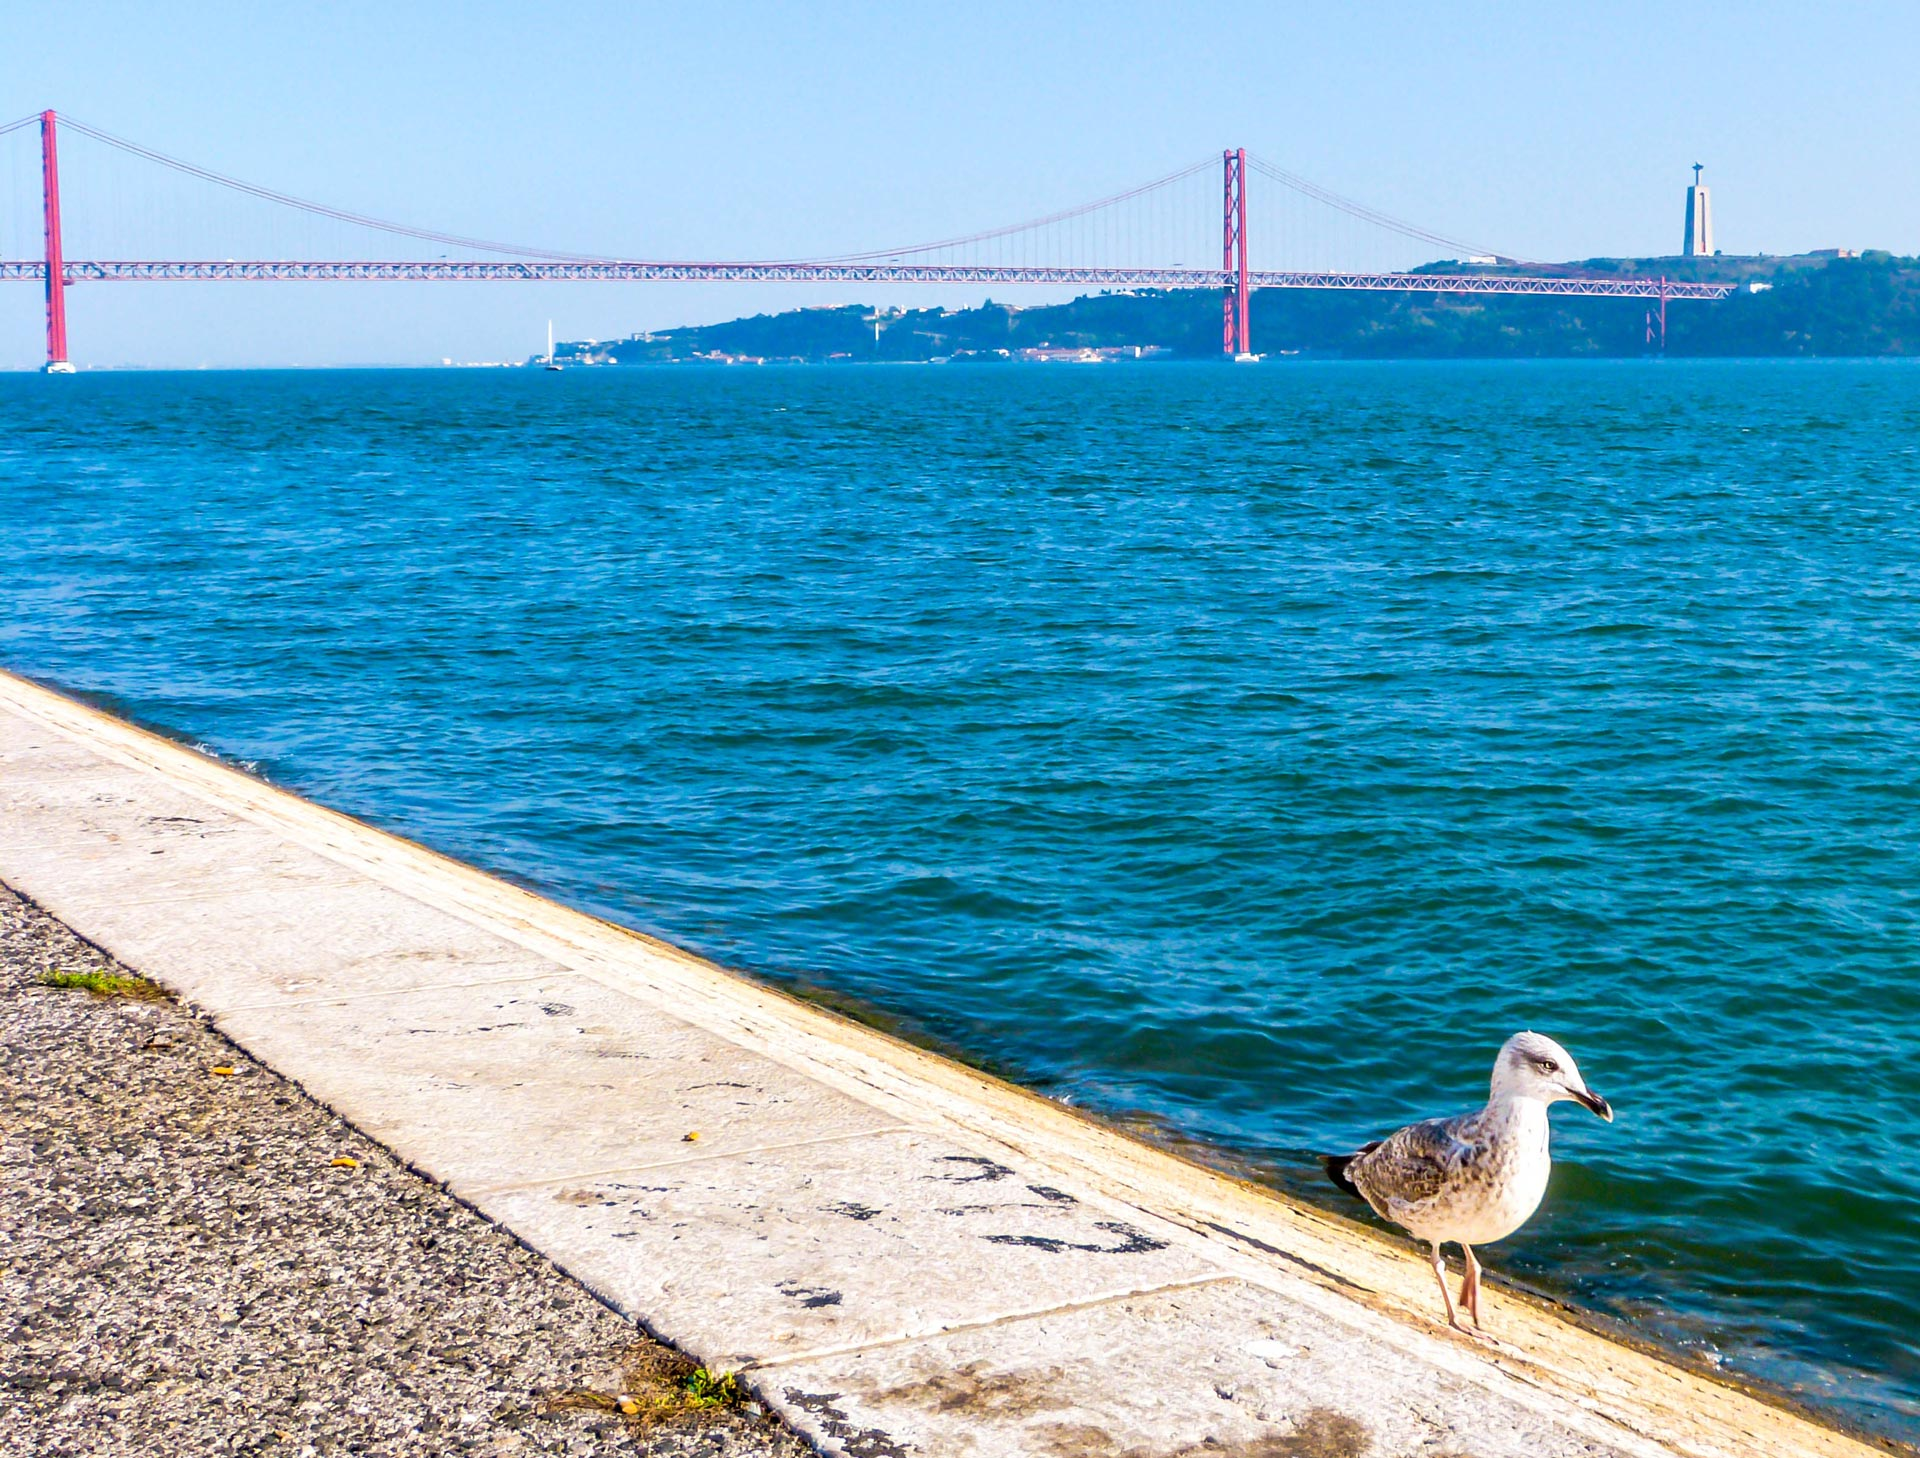 Seagull walking next to Tagus with Ponte 25 de Abril and Cristo Redentor in background in Lisbon